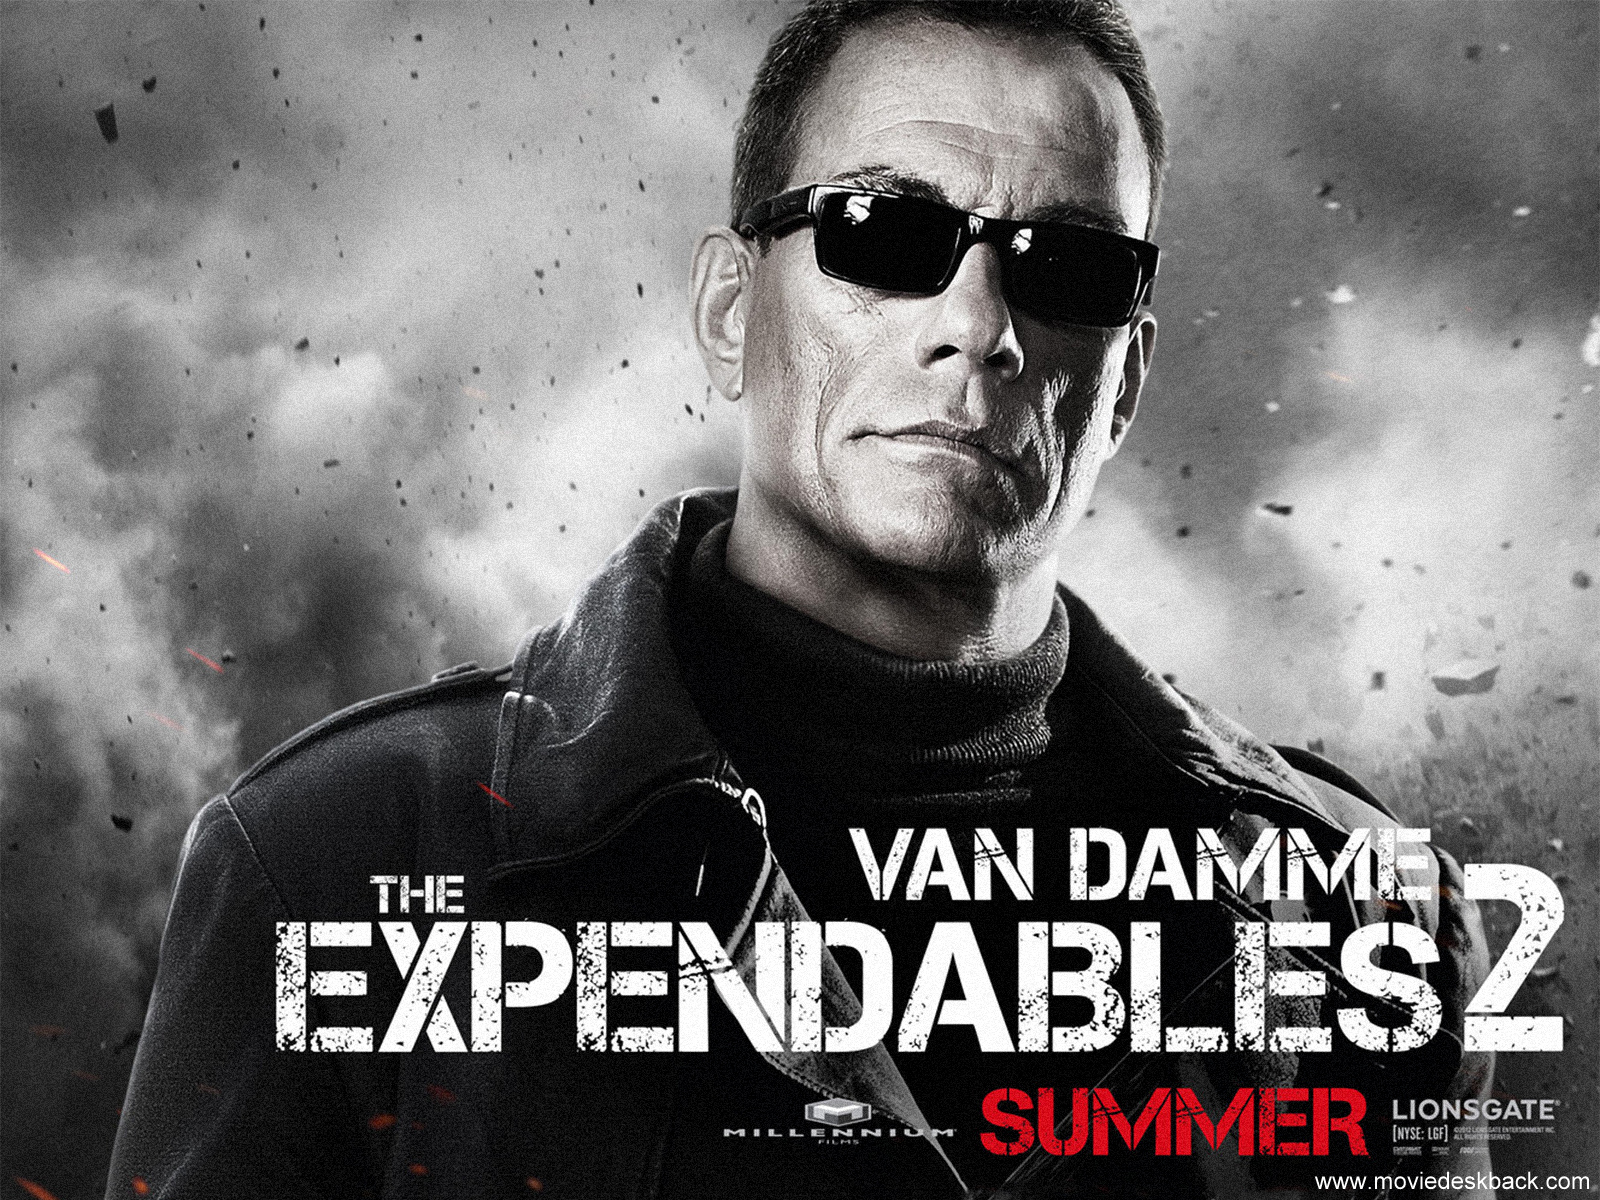 the expendables 2 hits cinemas on aug 16 - dugompinoy   a philippine